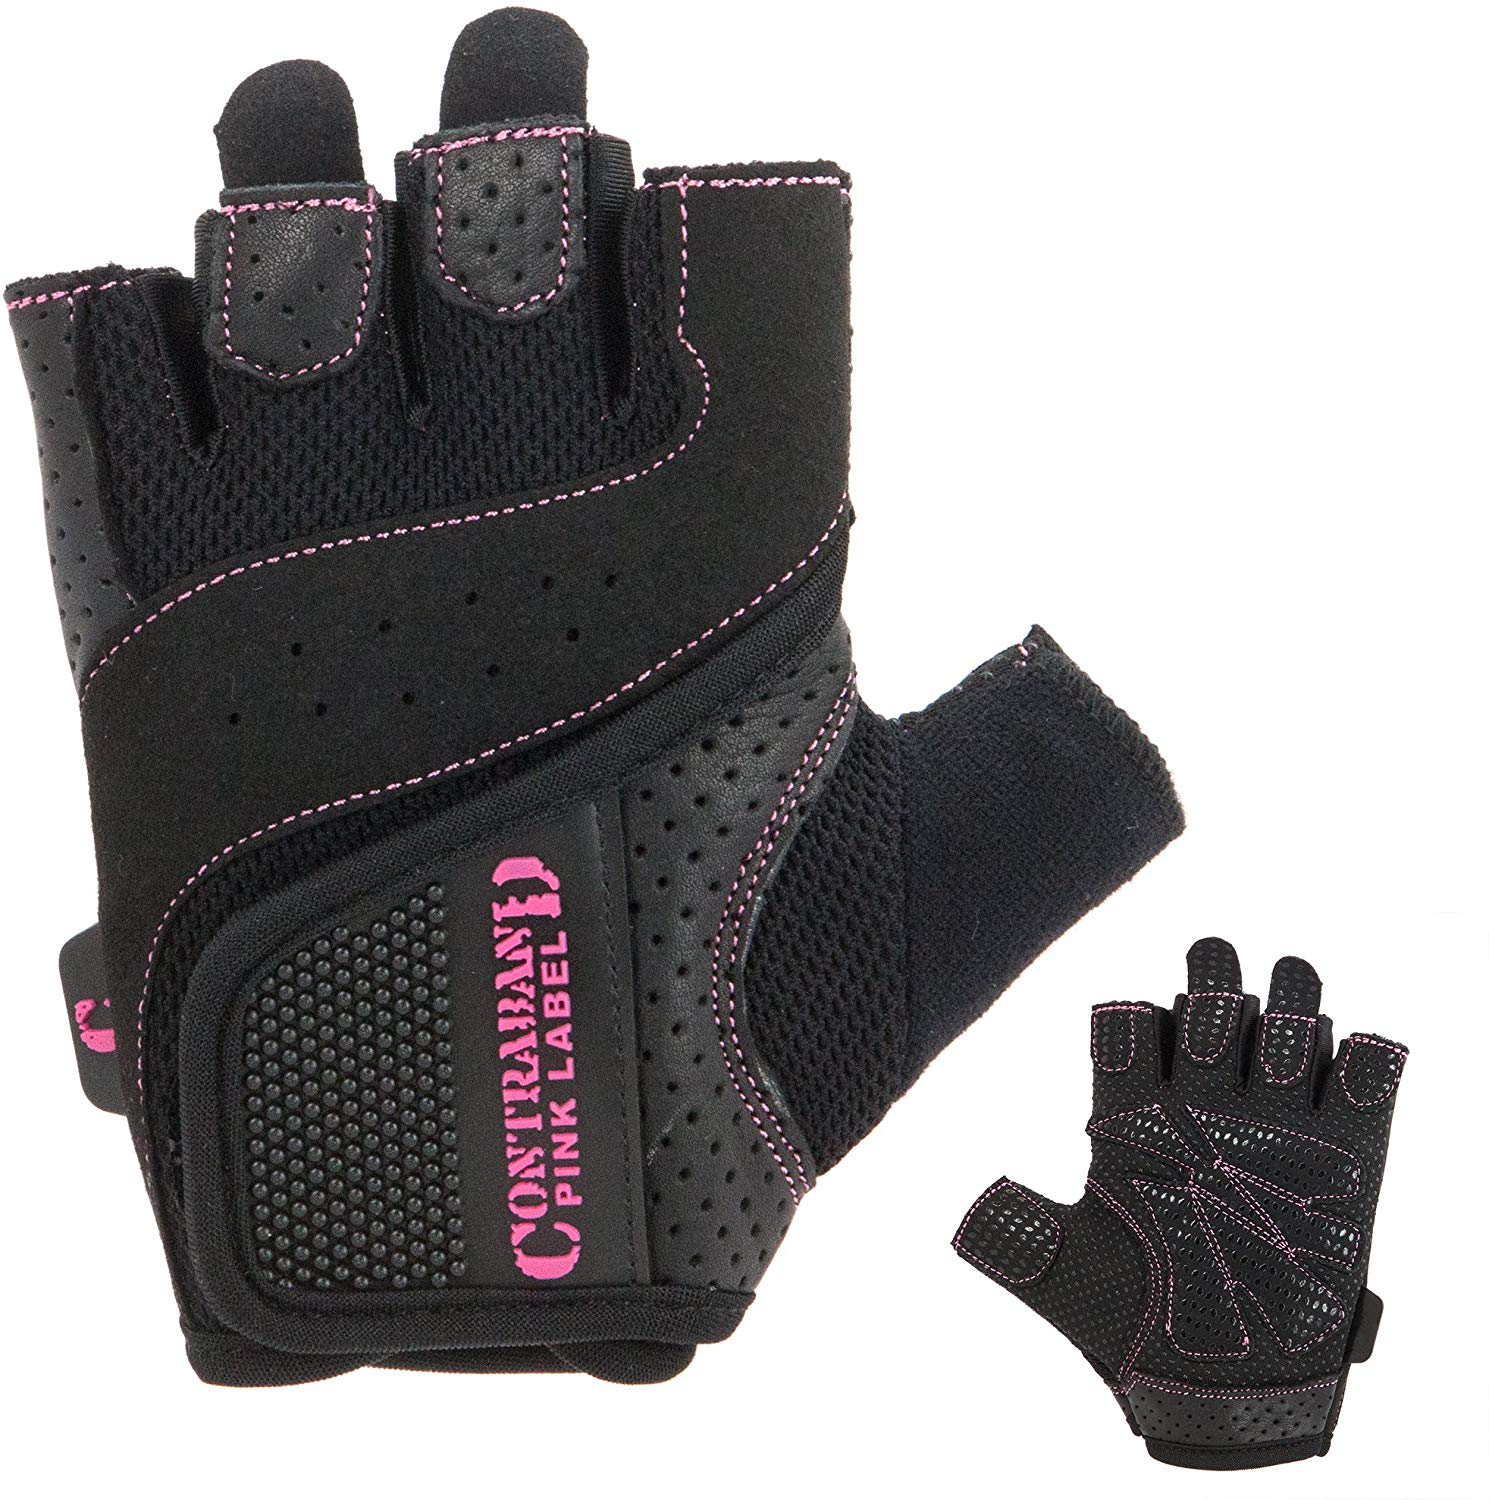 Contraband Women's Weight Lifting gloves